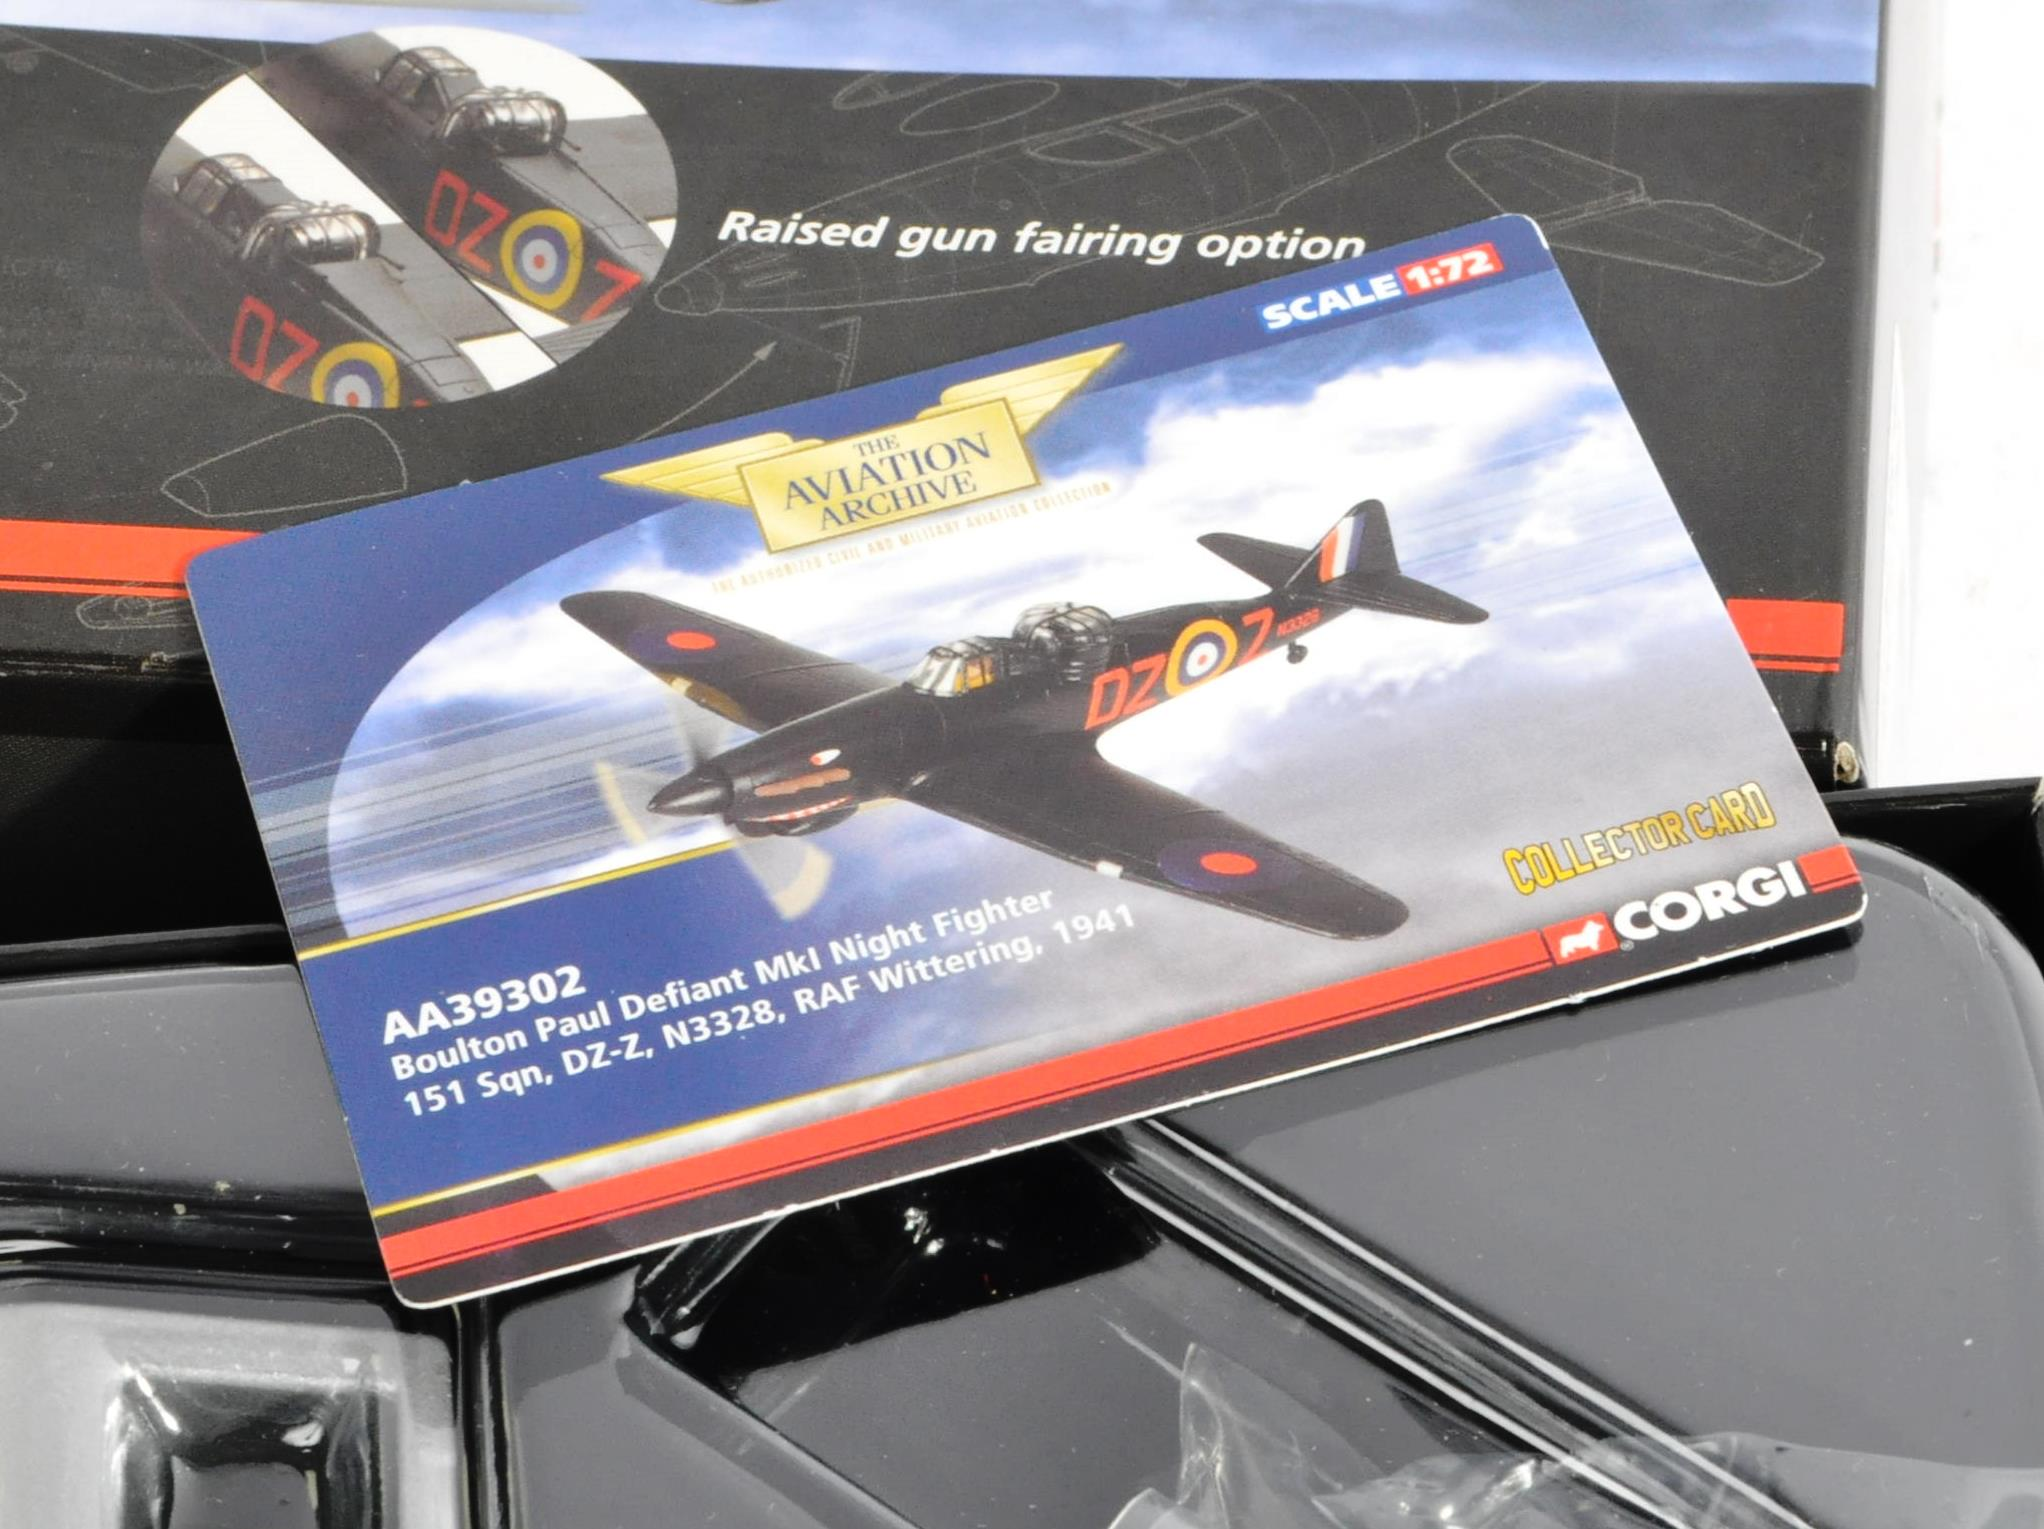 CORGI AVIATION ARCHIVE - TWO BOXED 1/72 SCALE LIMITED EDITION MODELS - Image 2 of 3